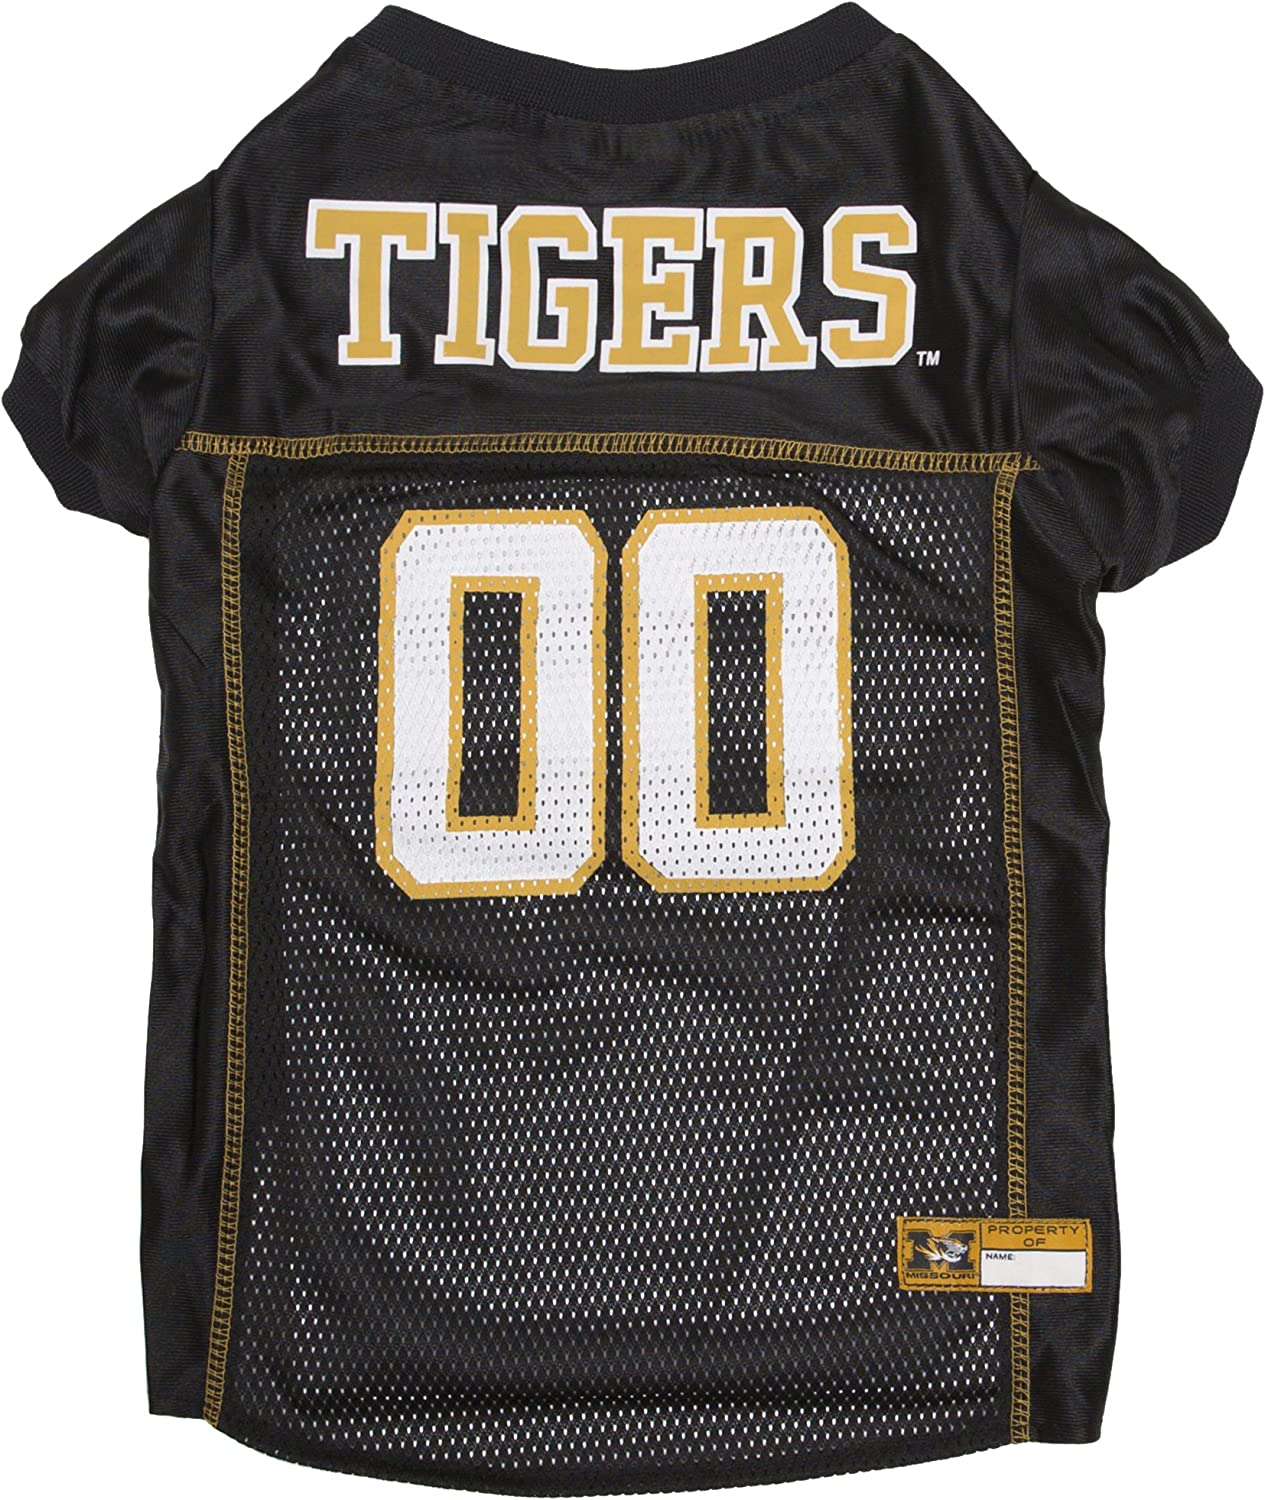 Pets First Collegiate Missouri Tigers Dog Mesh Jersey, XSmall